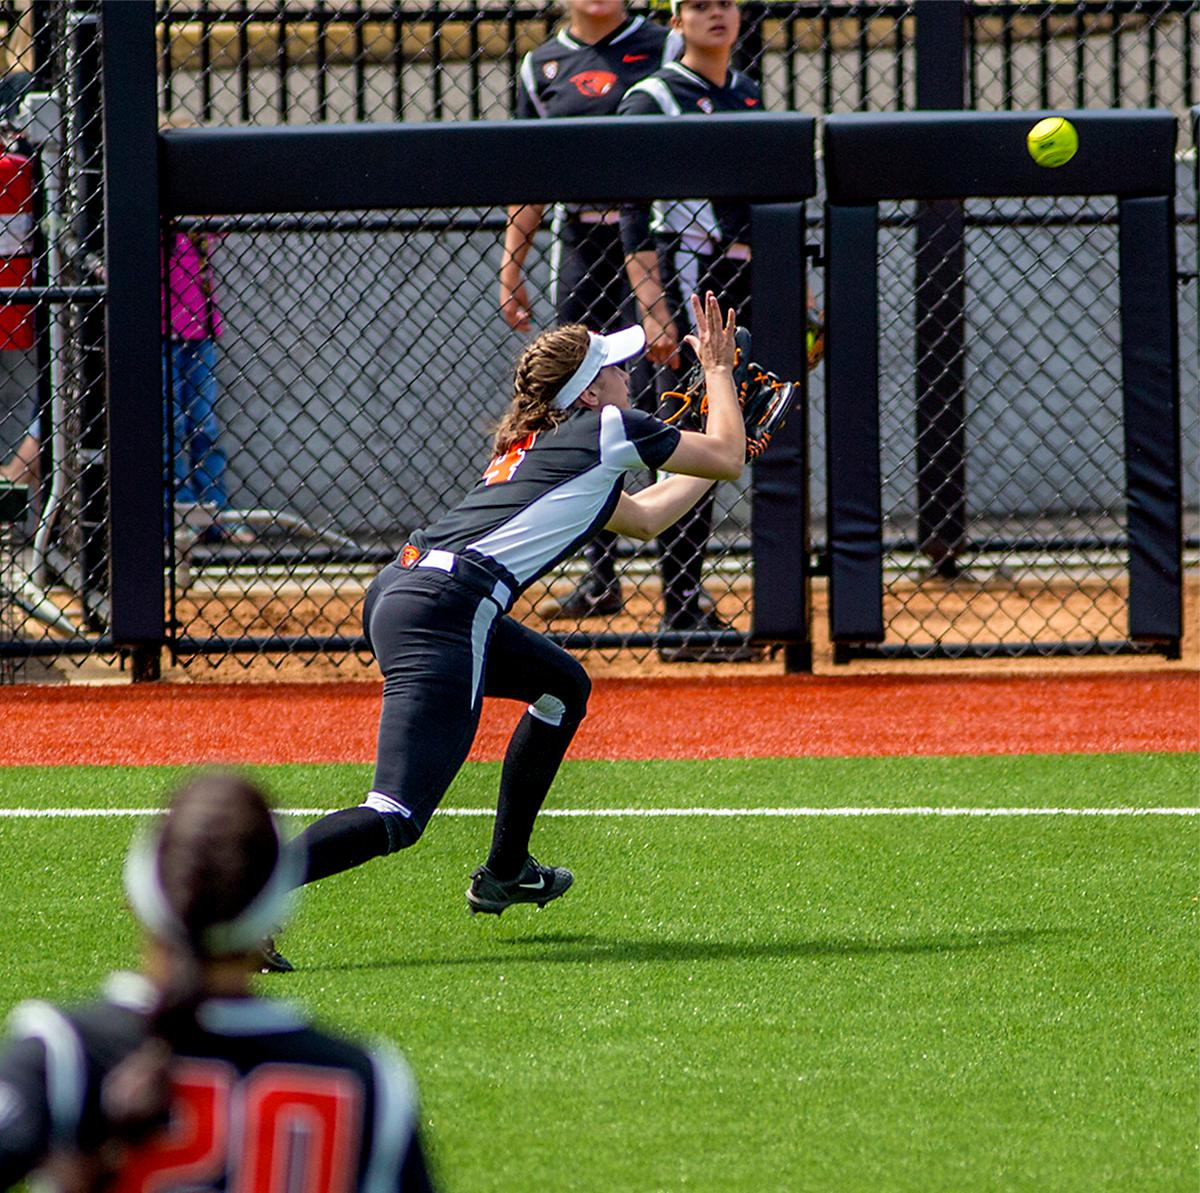 The Beavers Michelle Sass (#4) makes the catch in the outfield. The Oregon Ducks defeated the Oregon State Beavers 7-2 in game two of the three-game Civil War series at Jane Sanders Stadium on Saturday. The final game of the series will be on Sunday at 3:00 p.m. at Jane Sanders Stadium. Photo by August Frank, Oregon News Lab